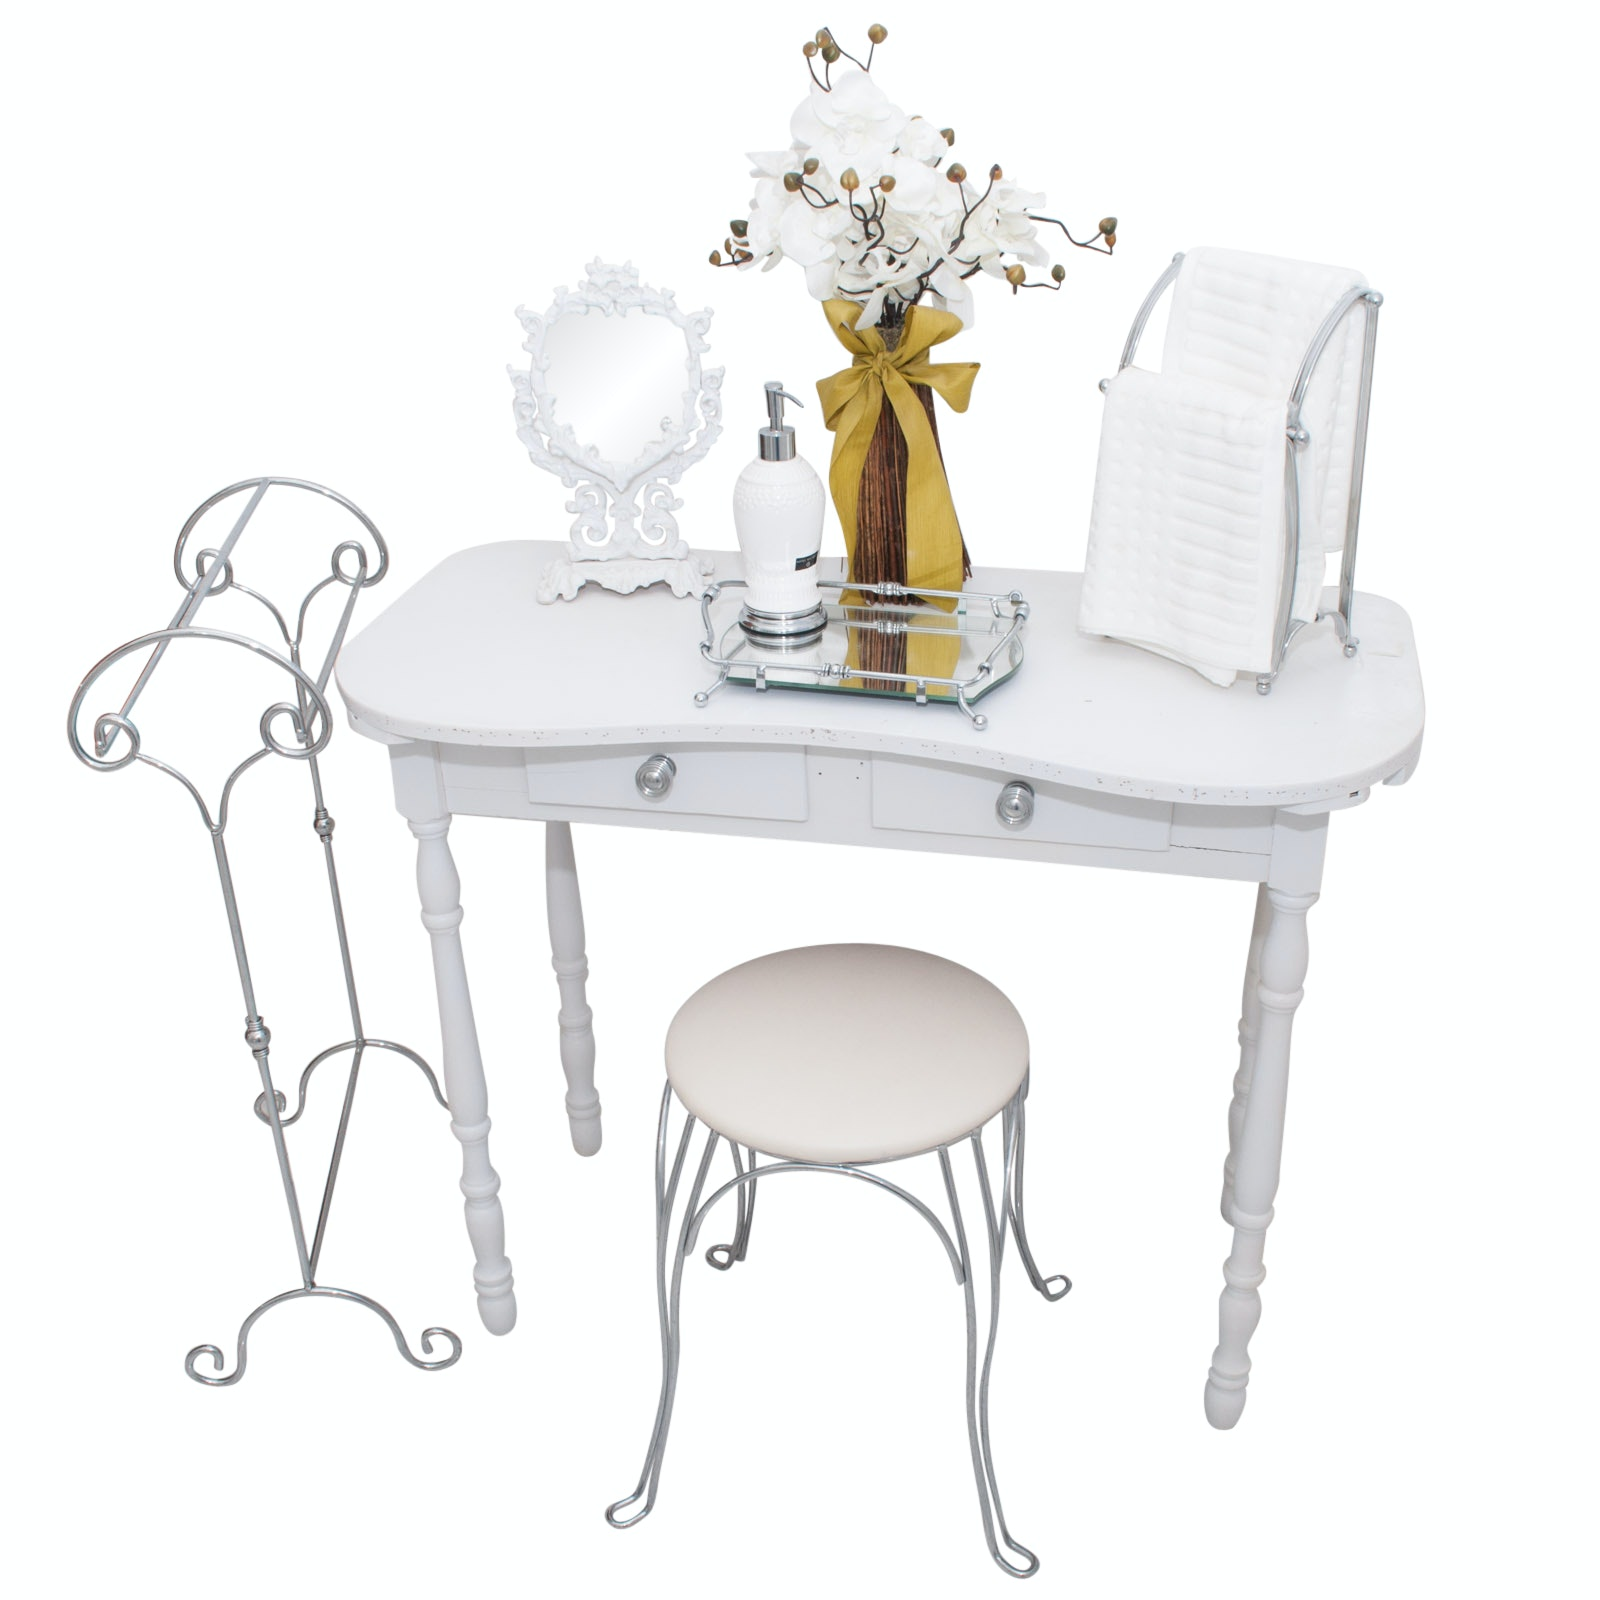 Dressing Table, Stool & Accessories